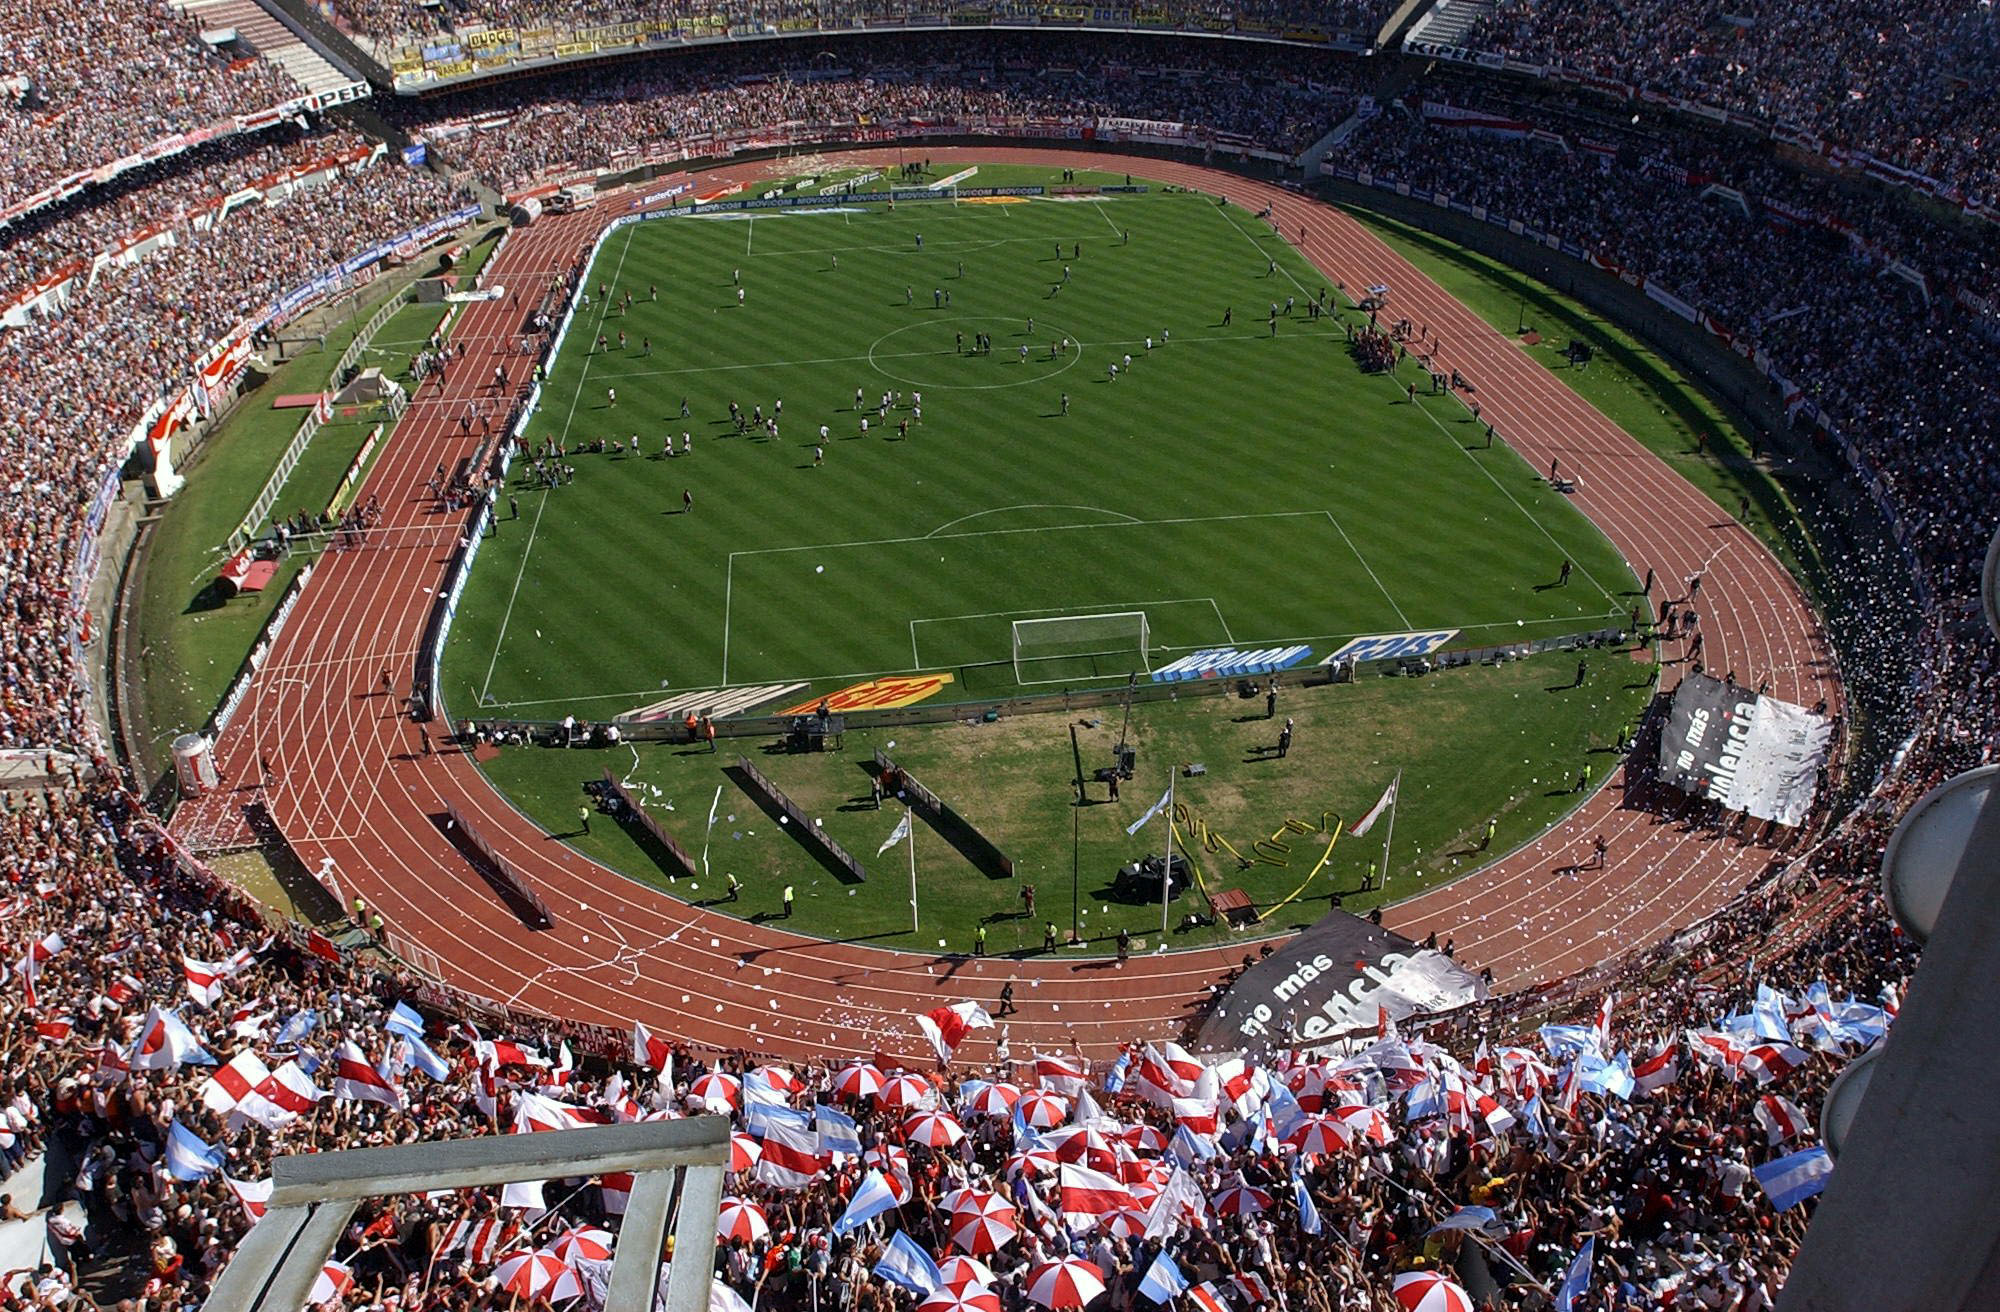 River Plate: Top 10 Worst Soccer Disasters Of All Time